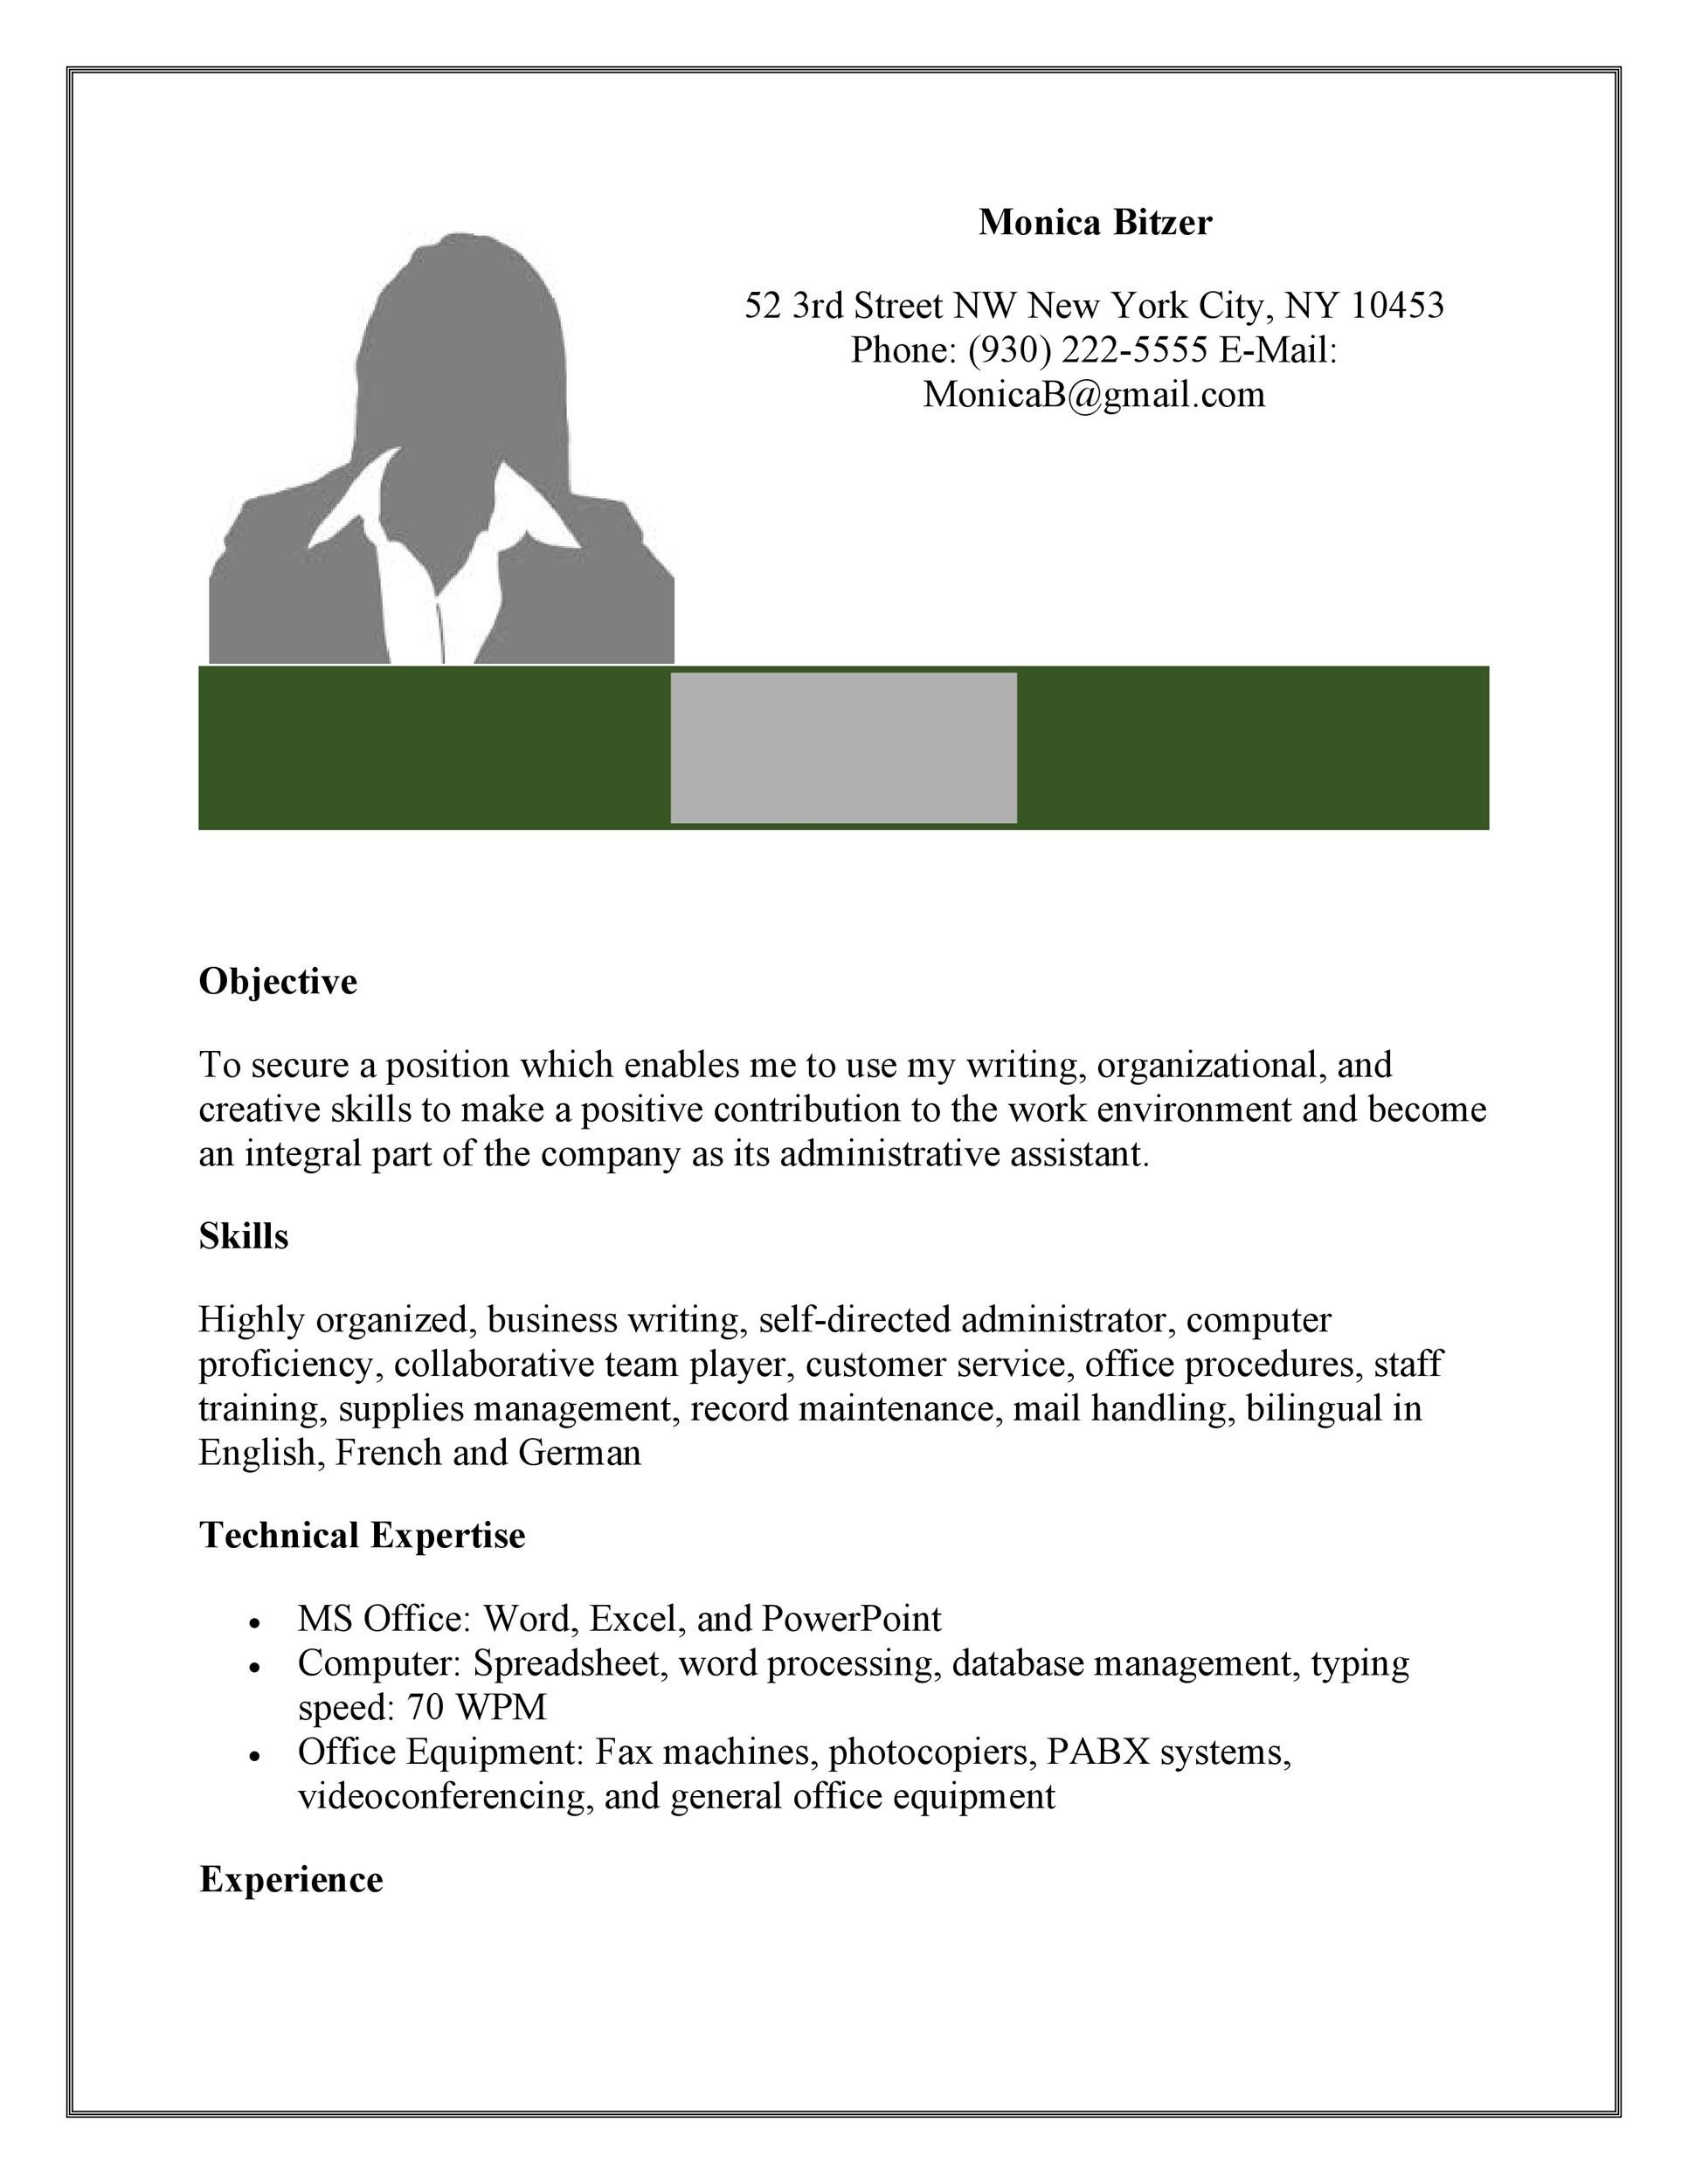 20 free administrative assistant resume samples template lab printable administrative assistant resume template 03 yelopaper Images